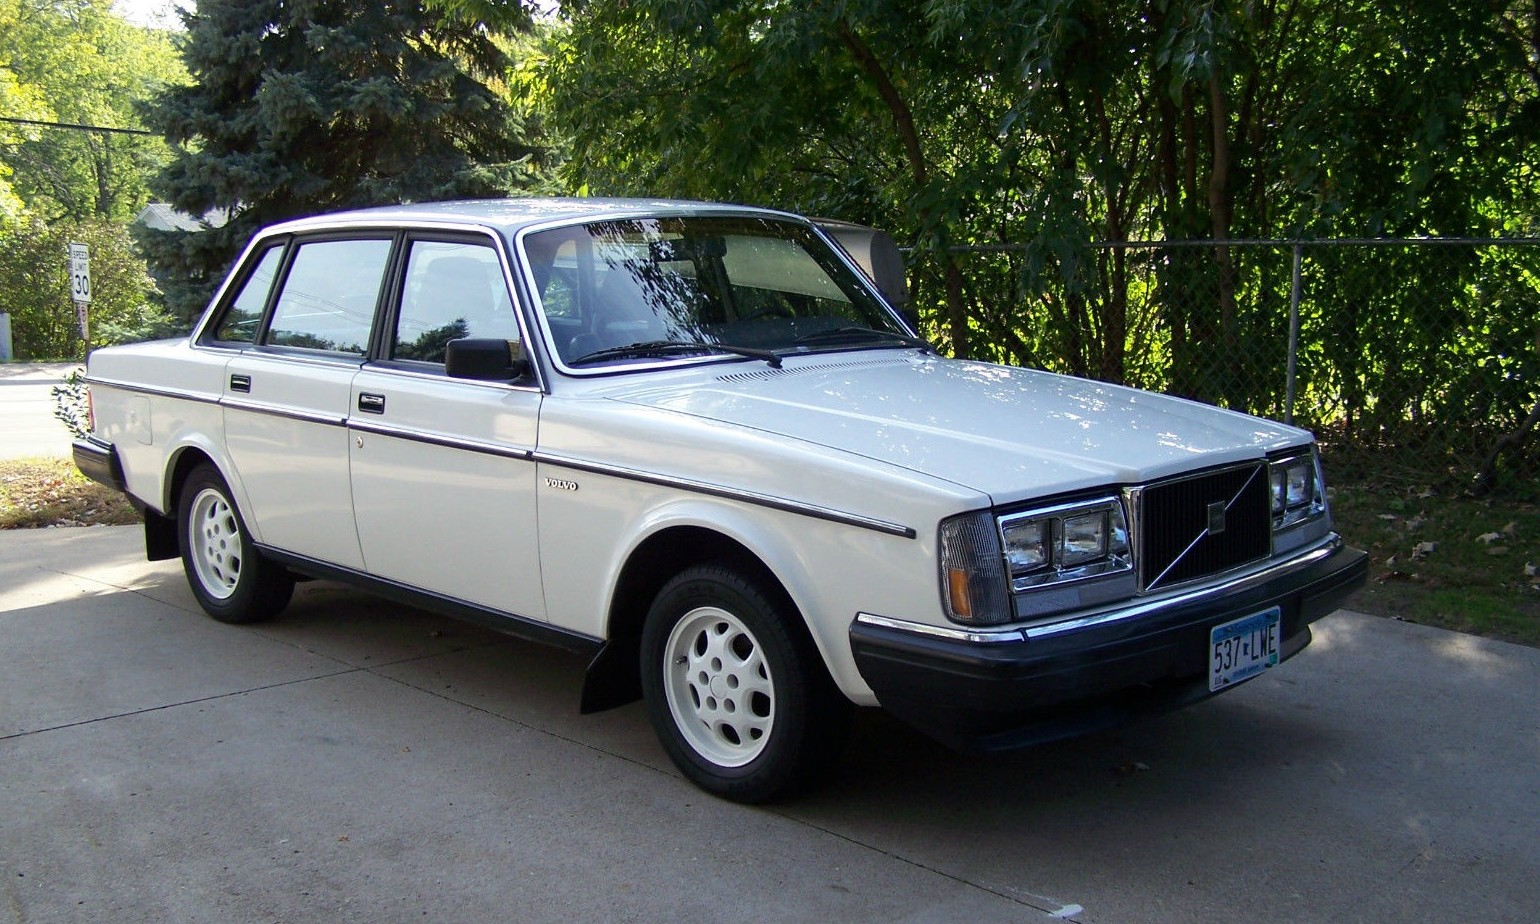 Cop Package 1985 Volvo 240 Police Car